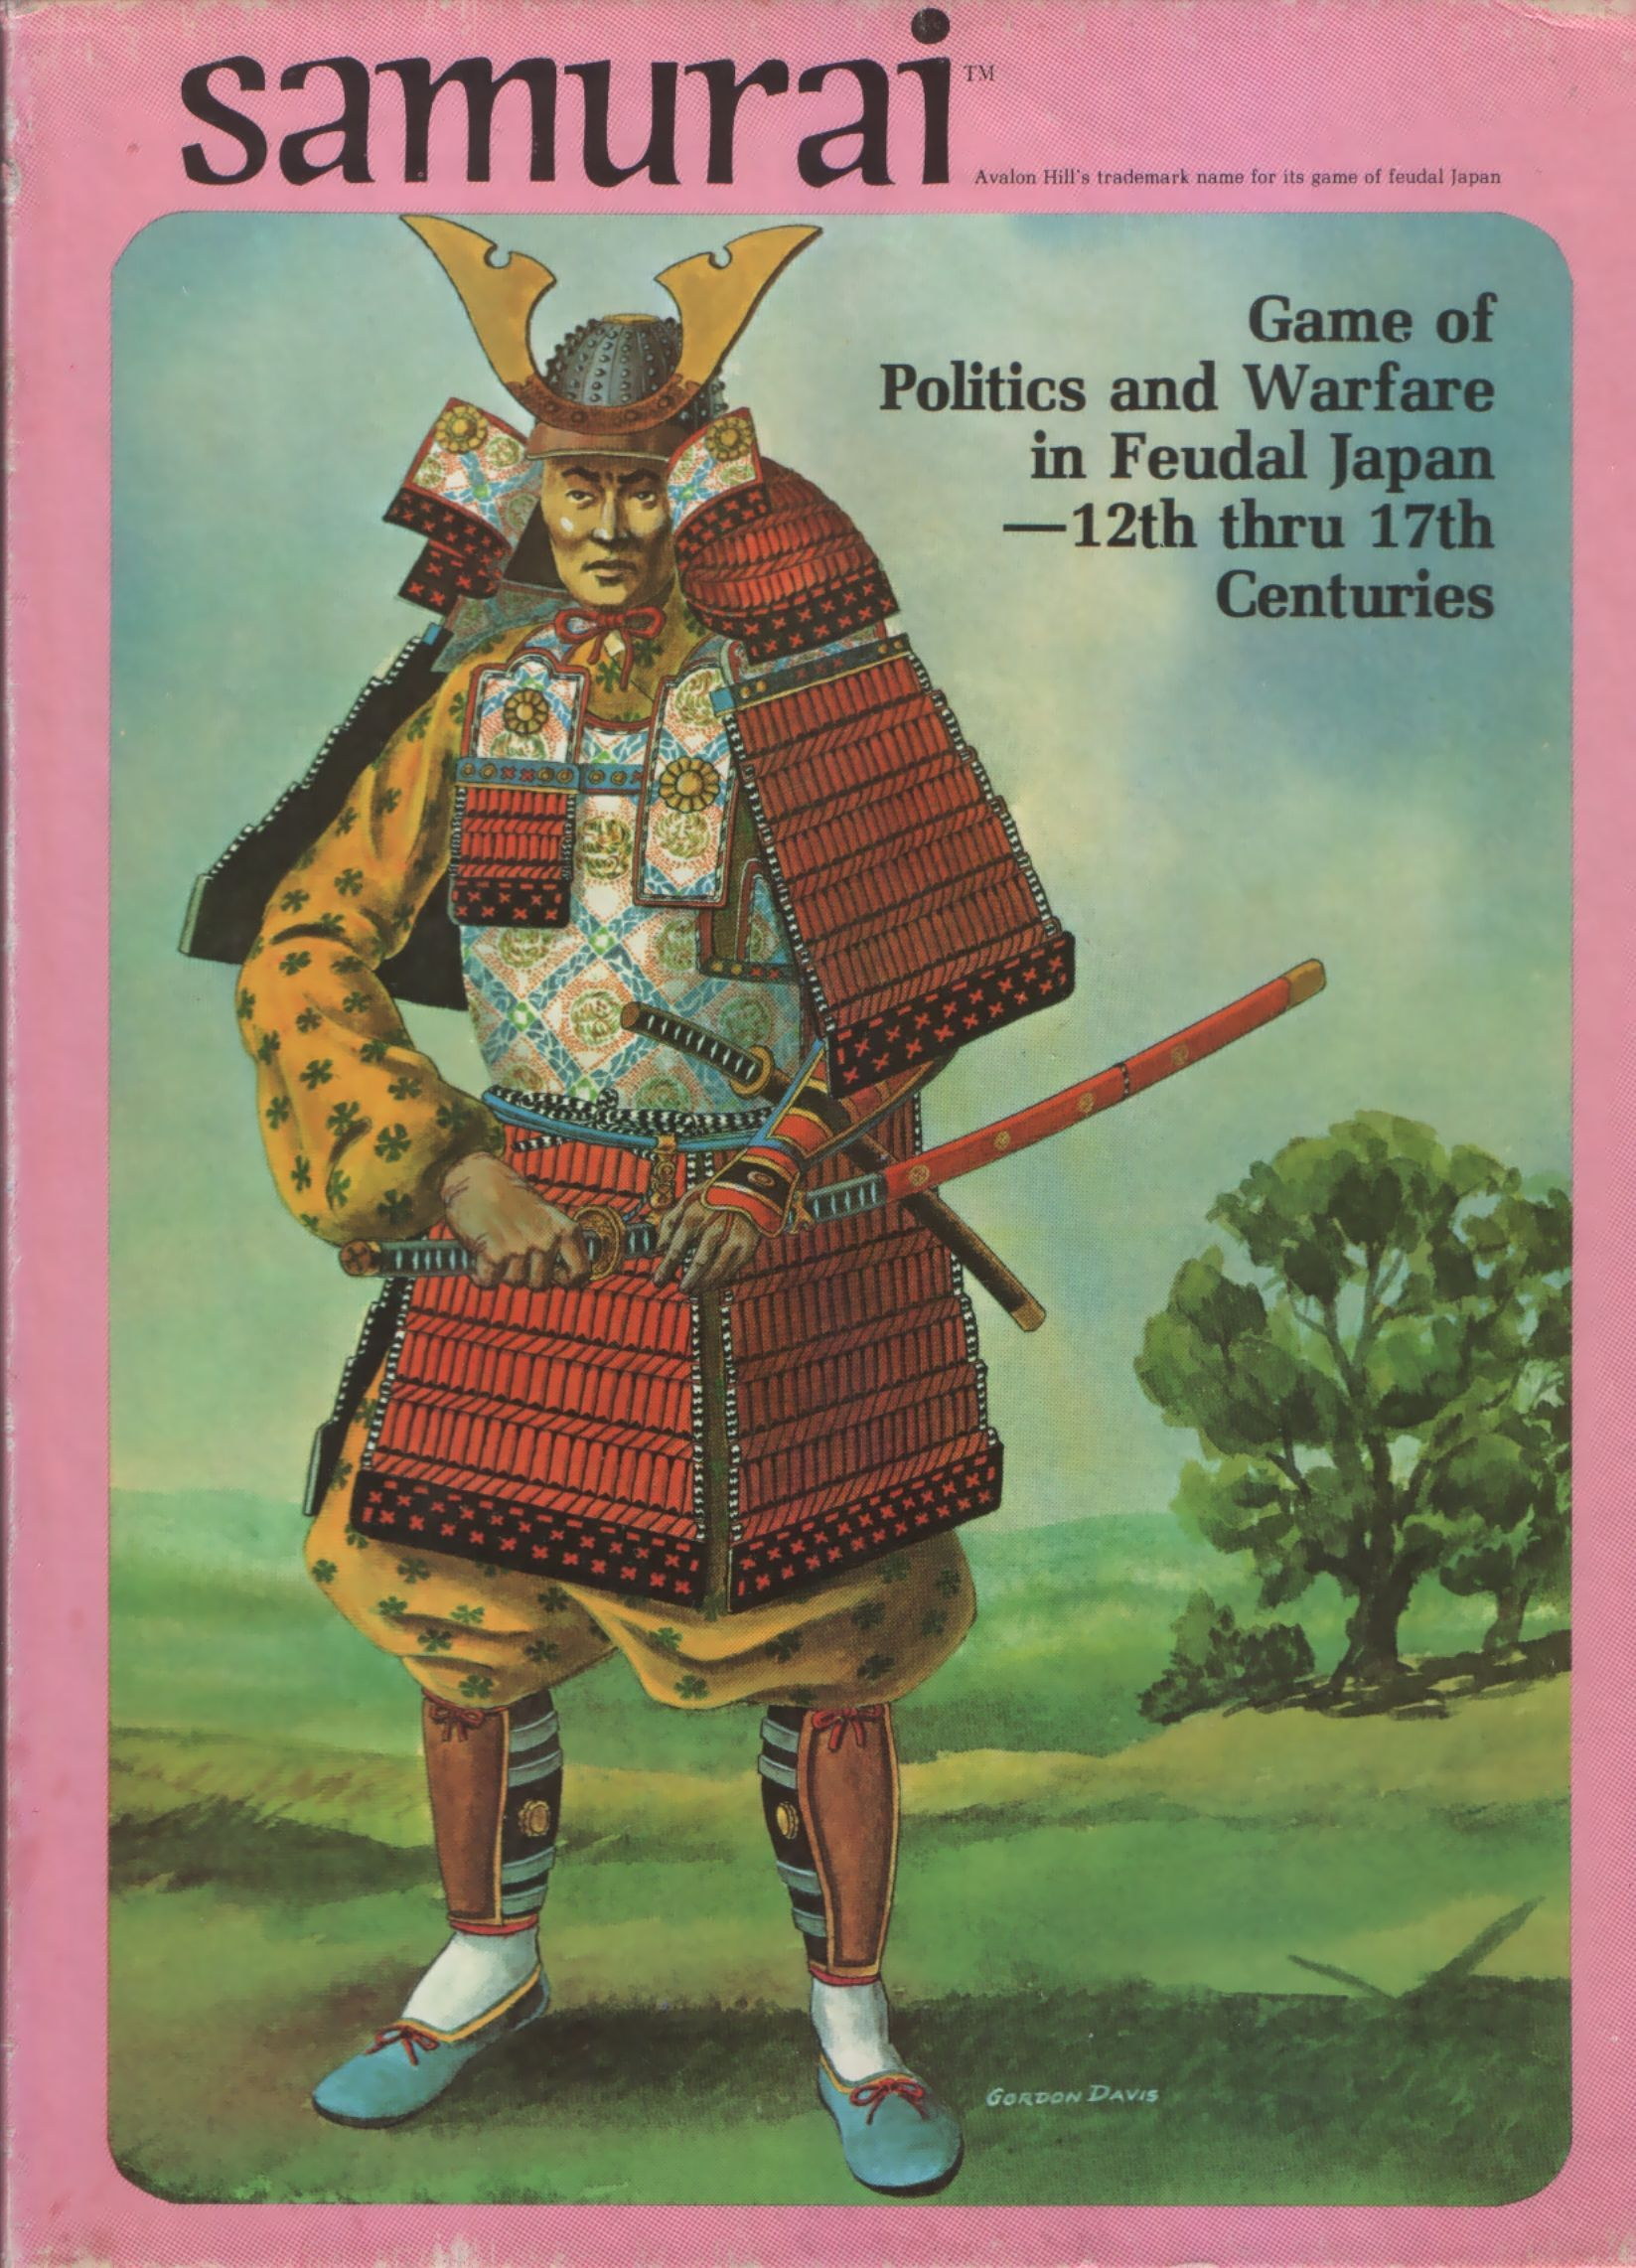 Samurai Samurai games, Japan games, Avalon hill